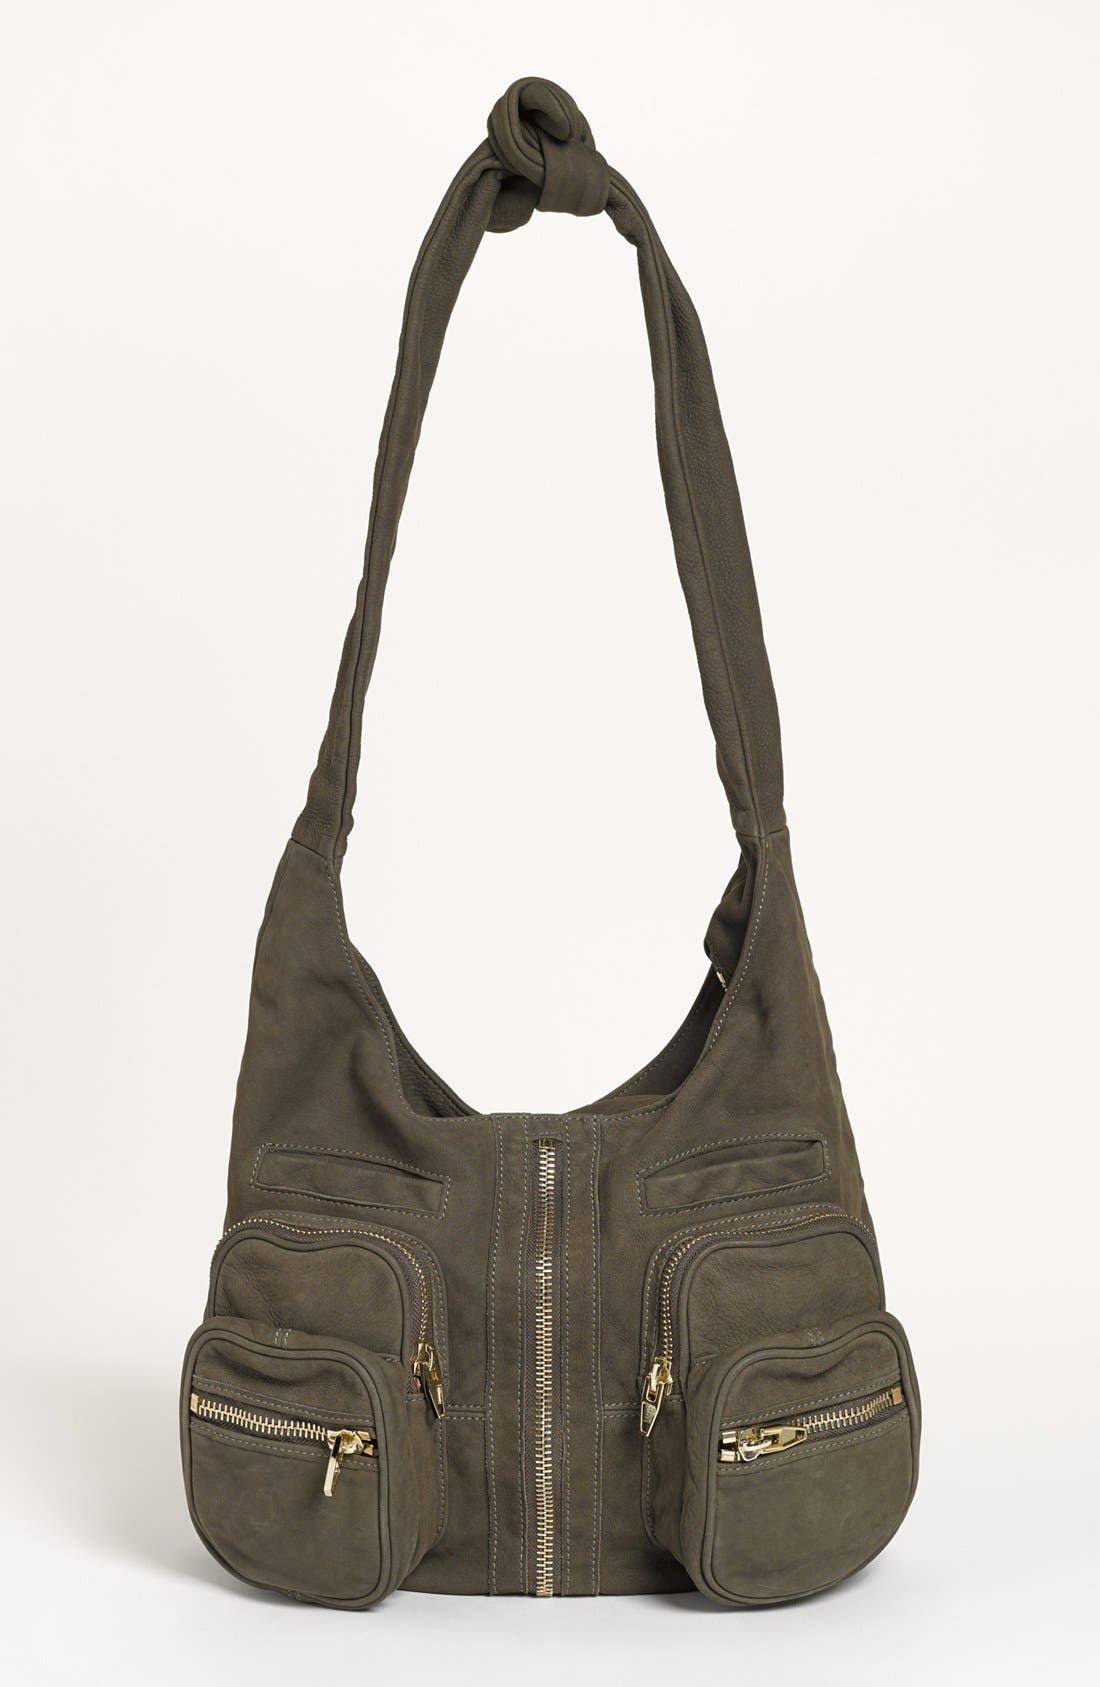 Alternate Image 1 Selected - Alexander Wang 'Donna - Pale Gold' Nubuck Leather Hobo